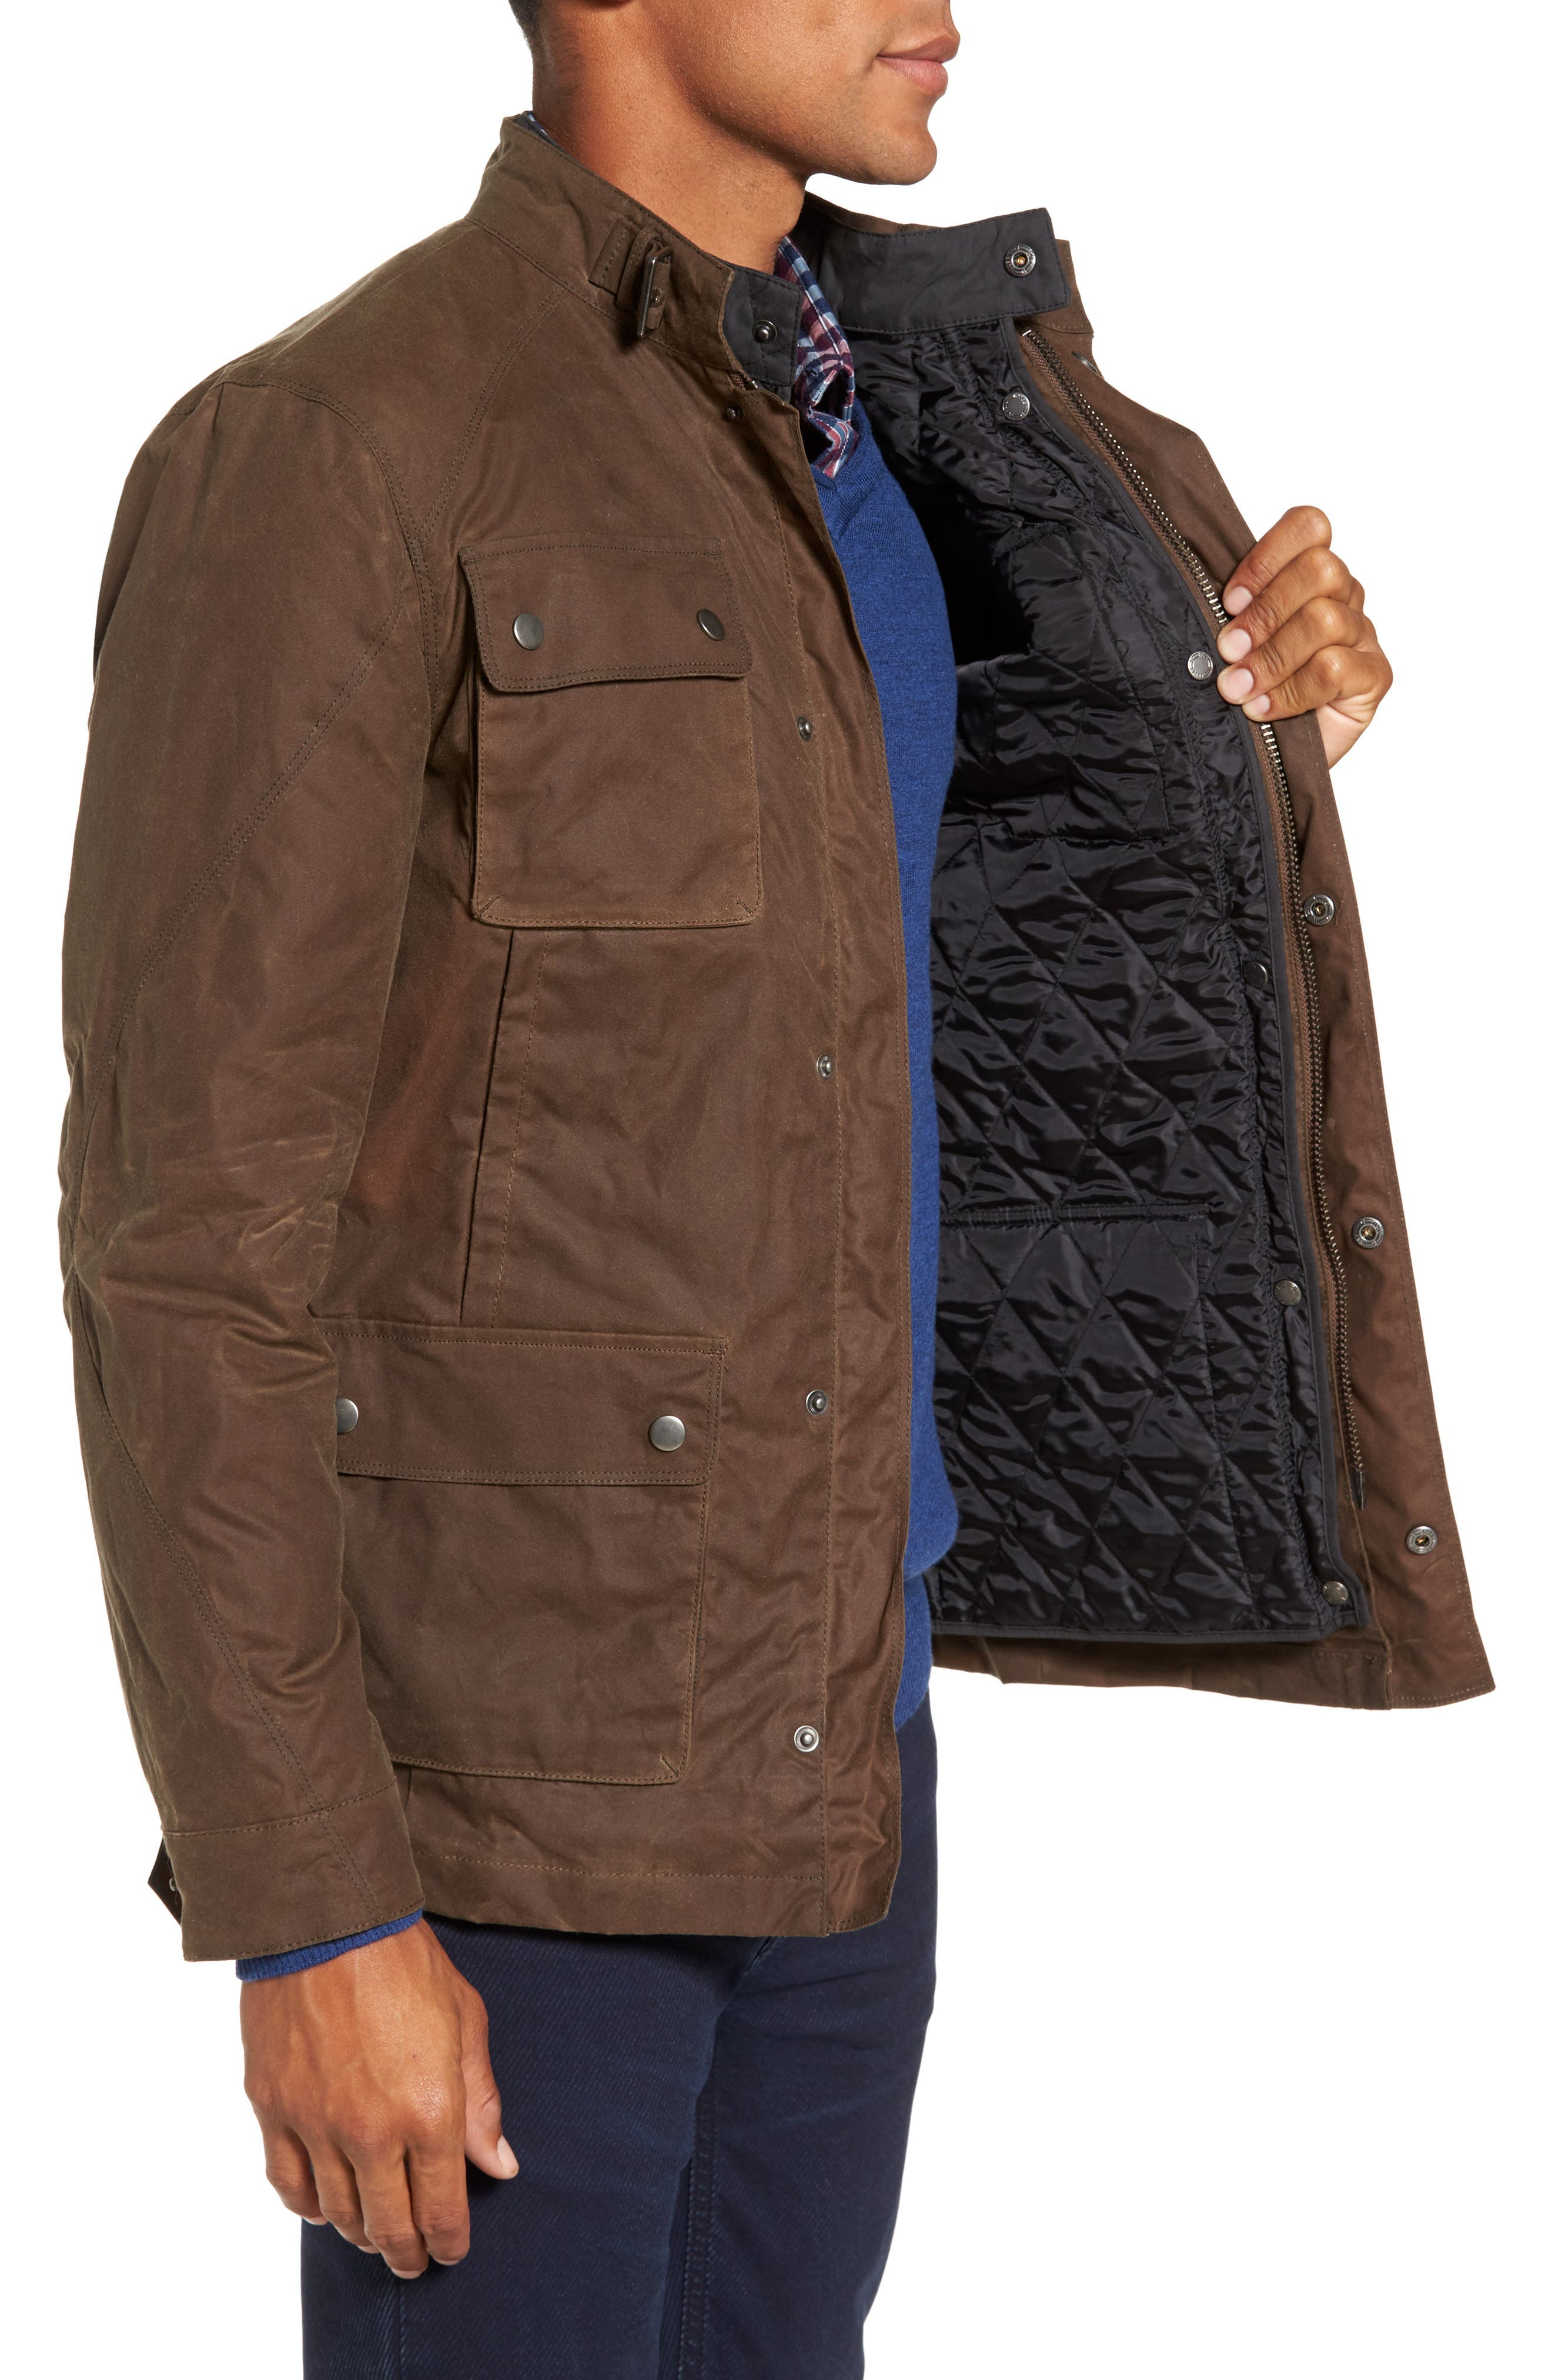 3-in-1 Waxed Cotton Jacket with Removable Vest,                             Alternate thumbnail 3, color,                             250